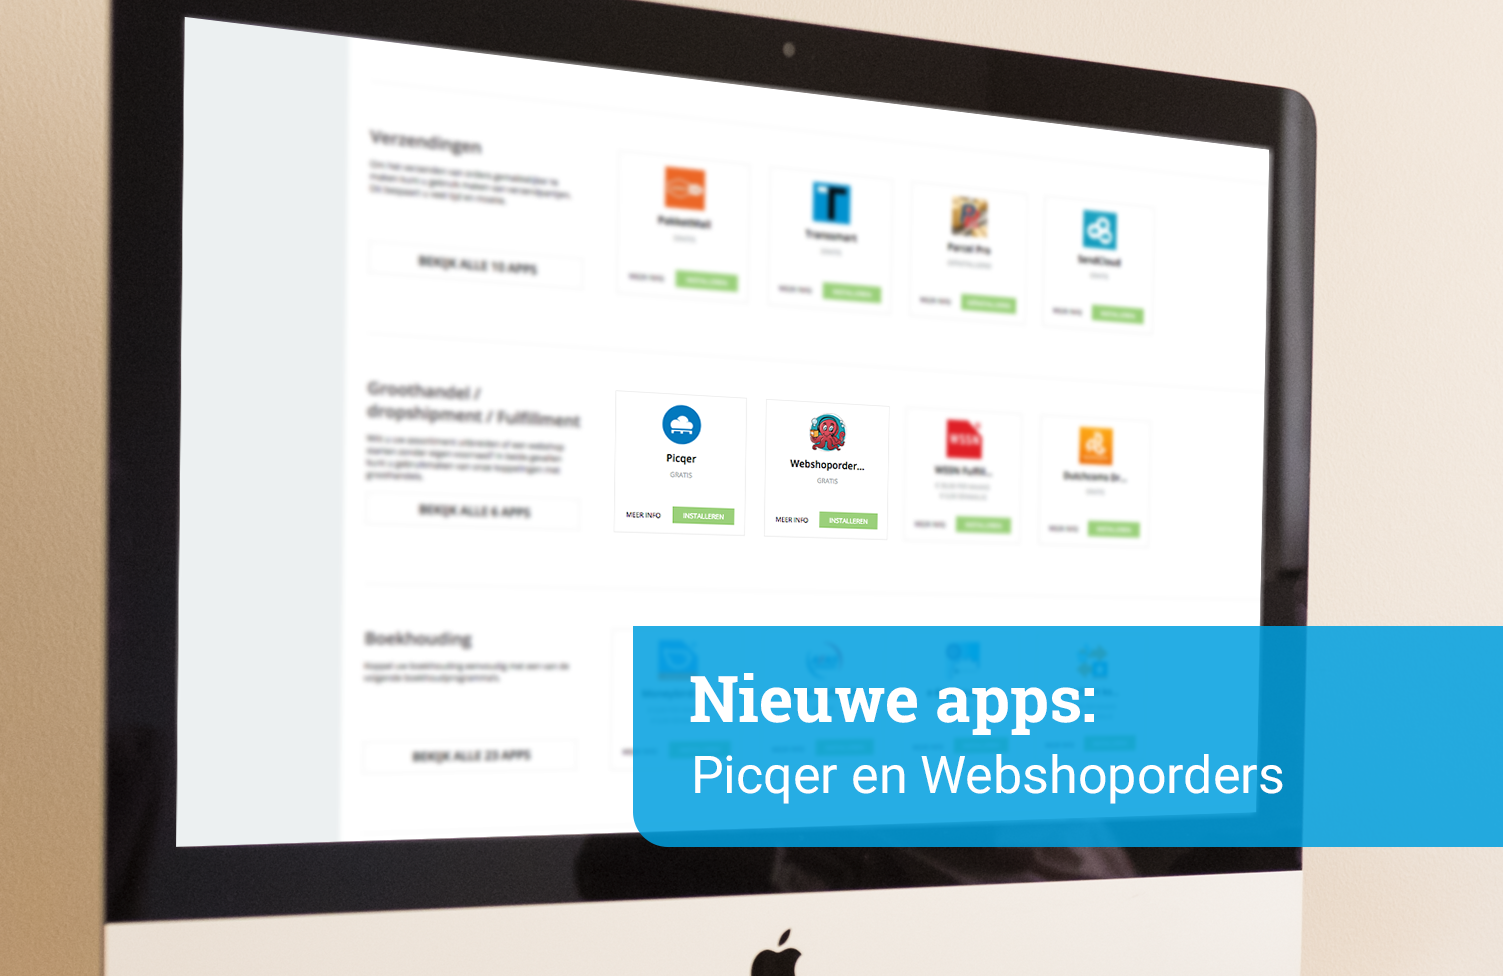 App Flash: Picqer & Webshoporders